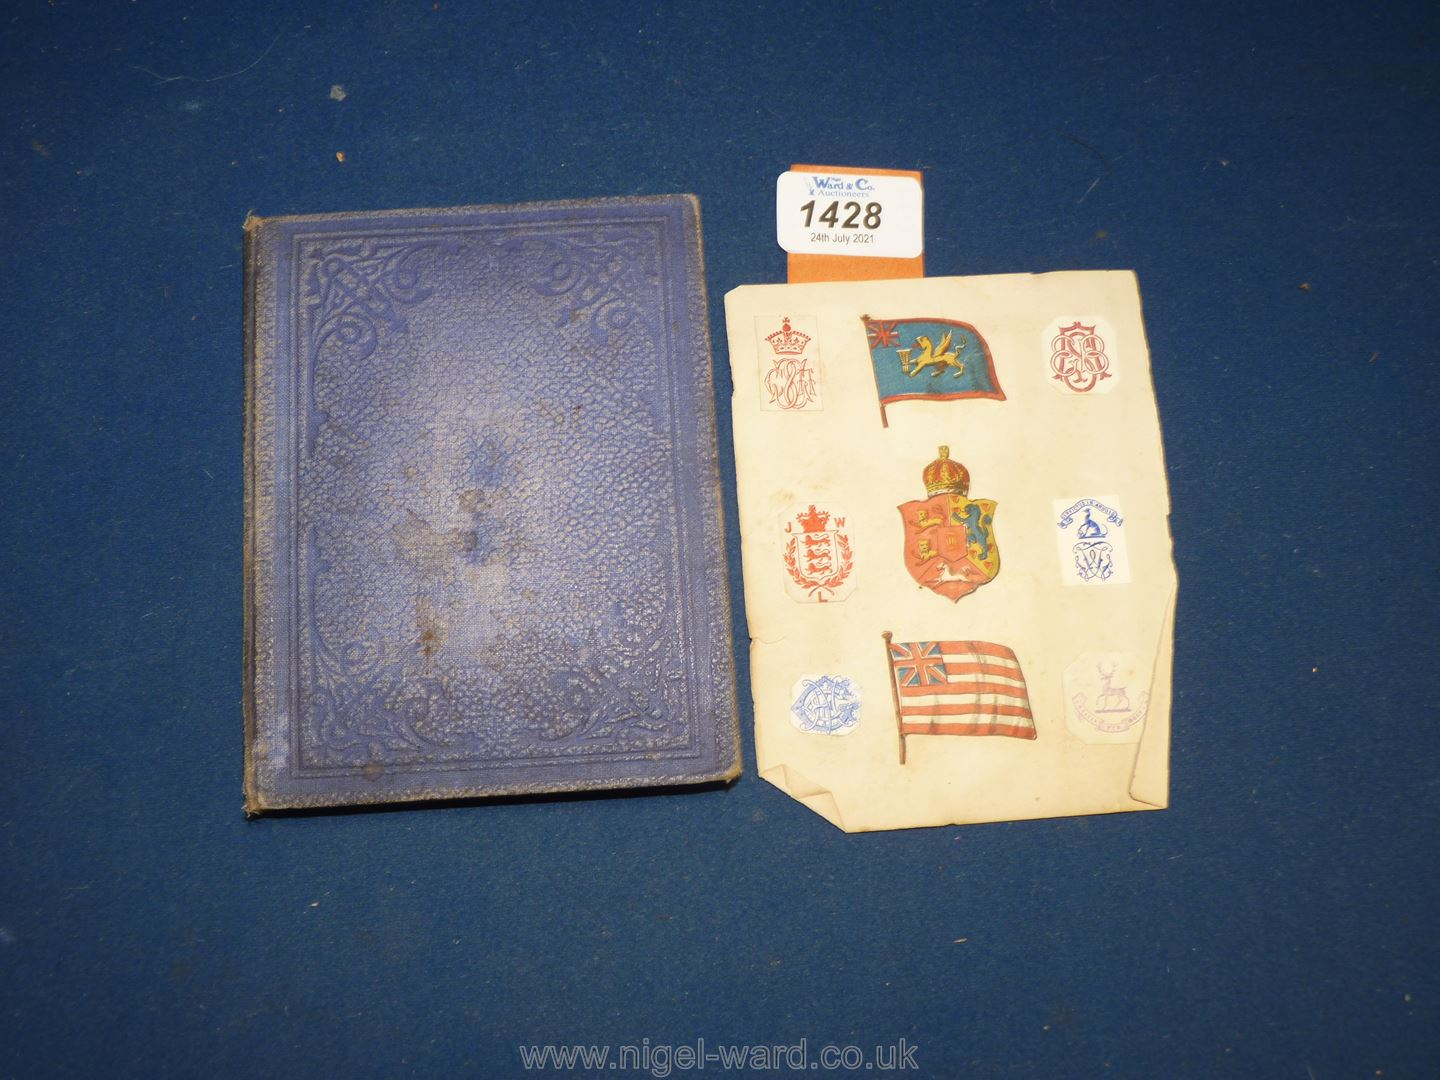 An interesting album of Coats of Arms, ciphers etc including Queen Victoria's family, nobility, - Image 7 of 7